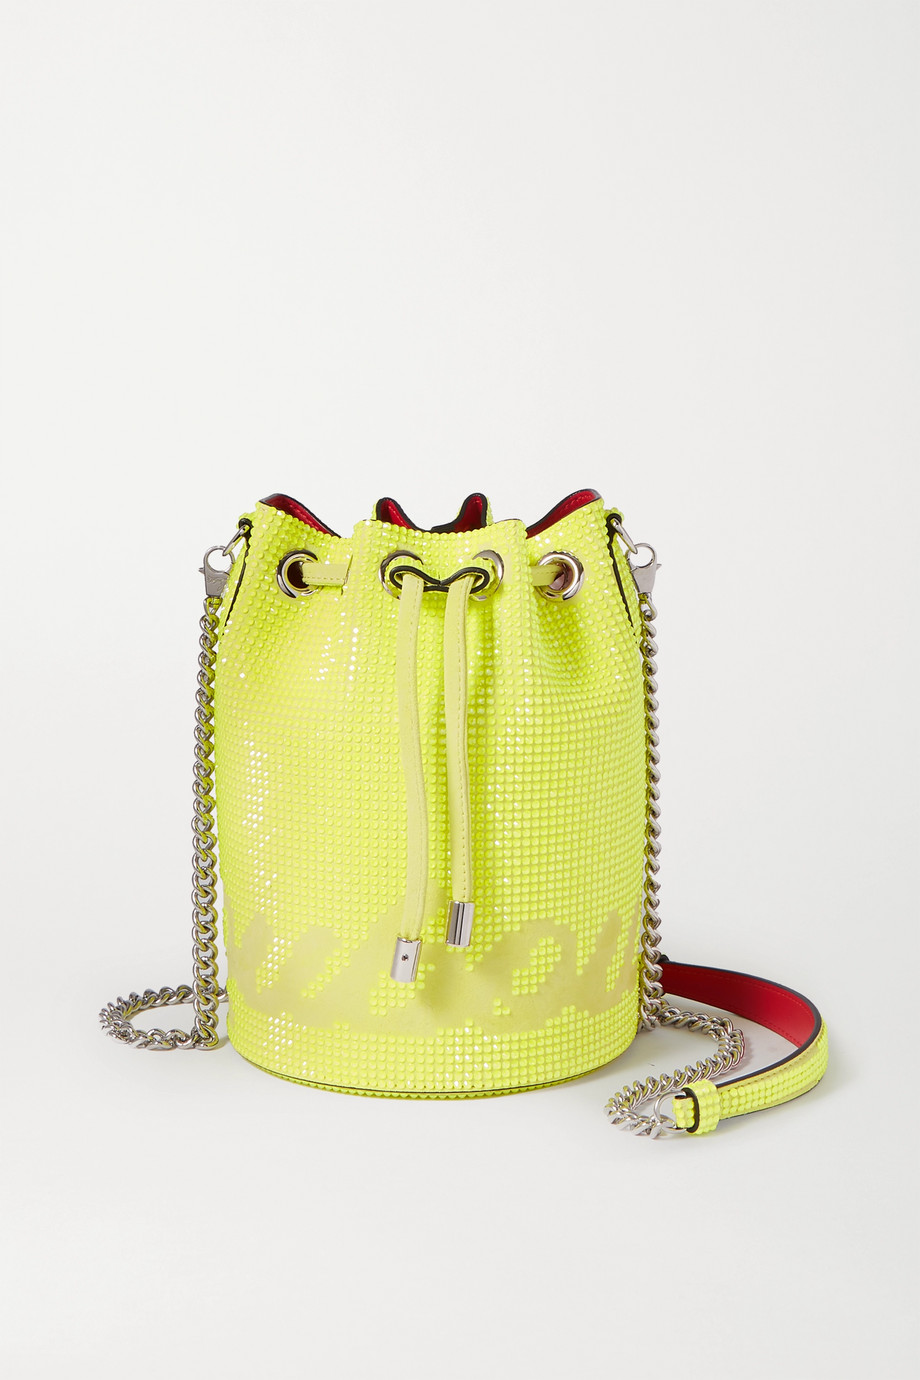 Christian Louboutin Marie Jane neon crystal-embellished suede bucket bag